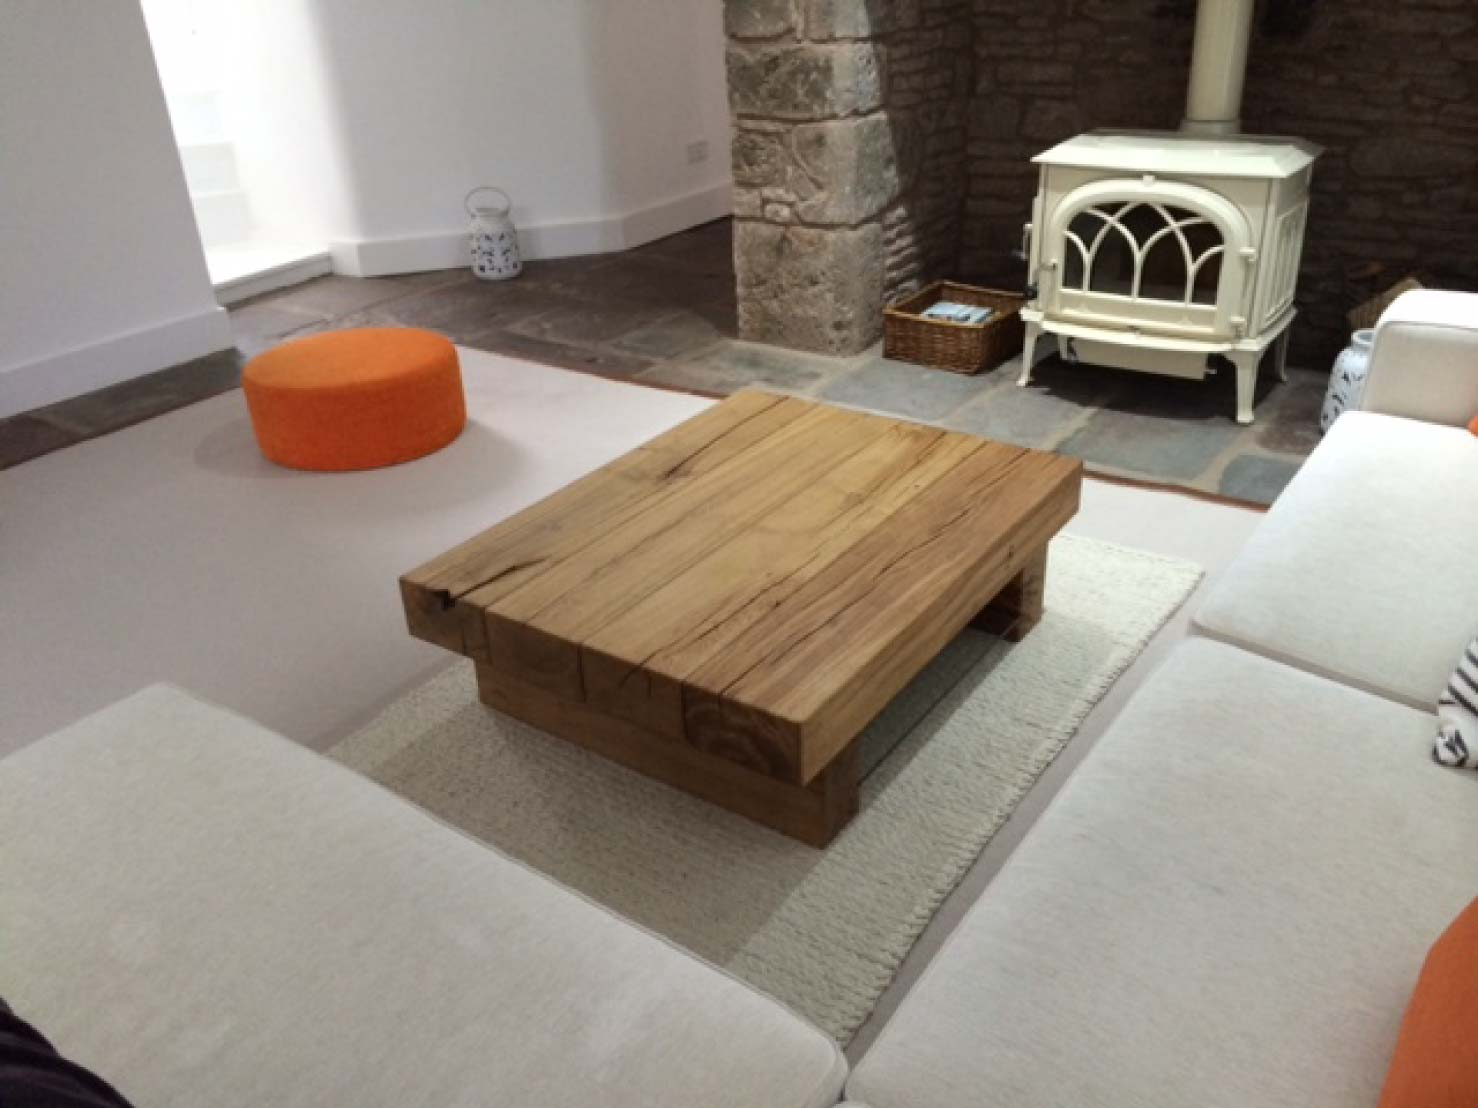 rustic-solid-oak-coffee-table-from-abacus-tables-classic-style-1.1m-project-239